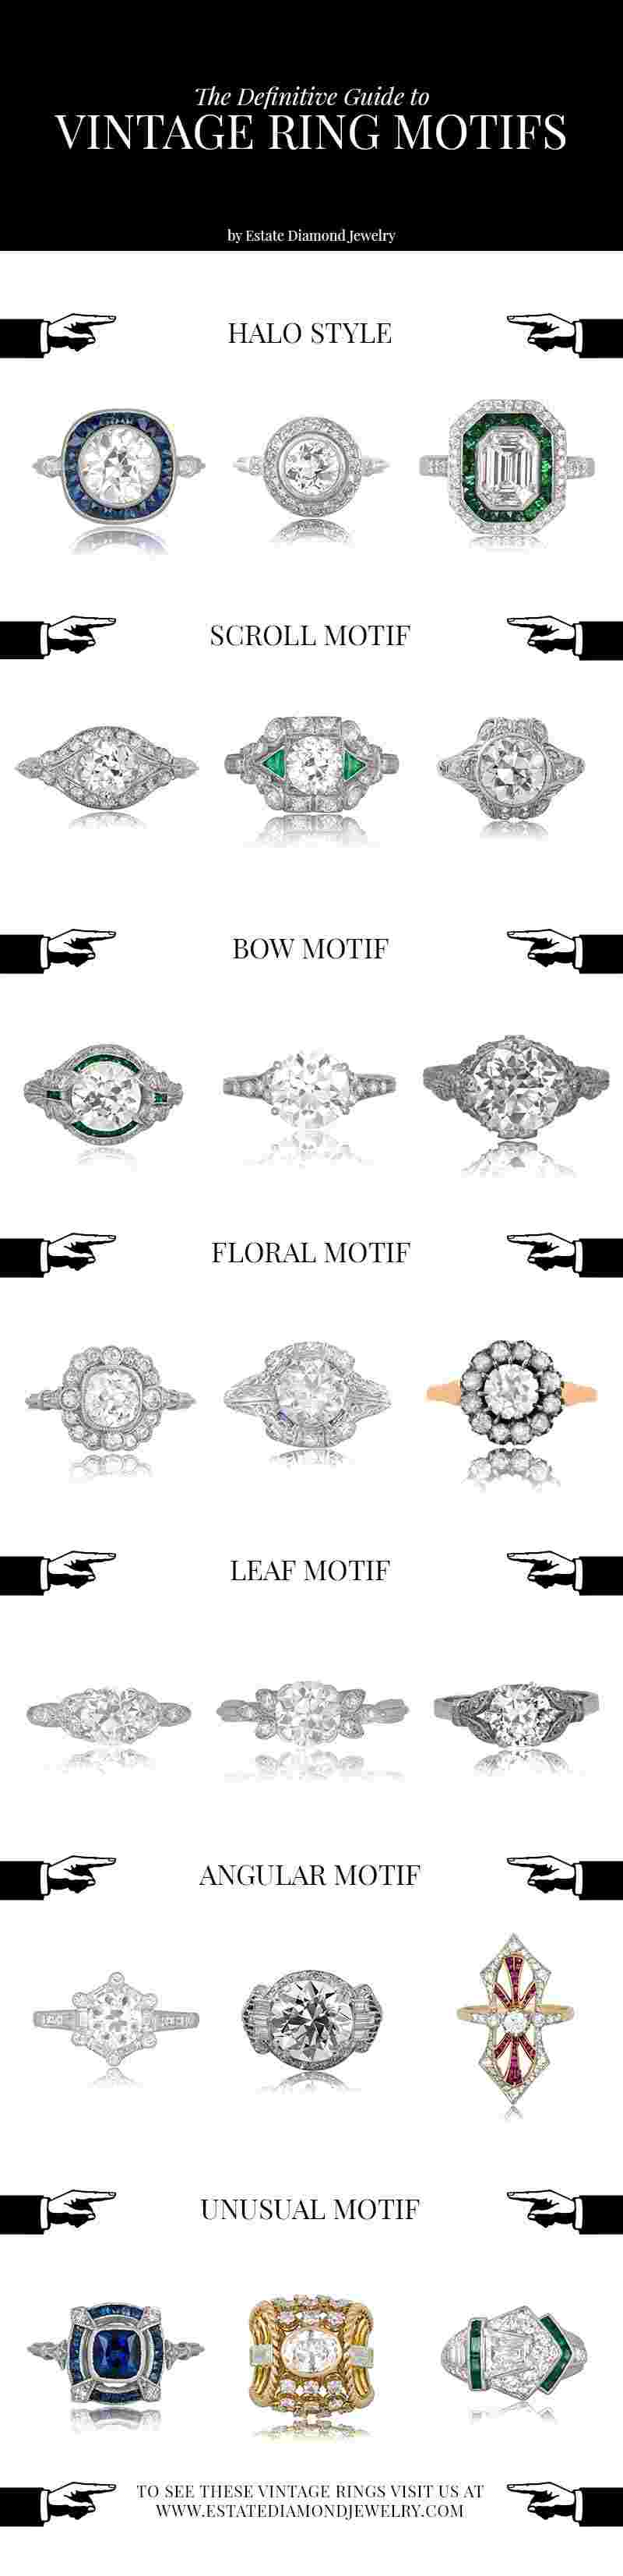 Vintage Engagement Ring Motifs